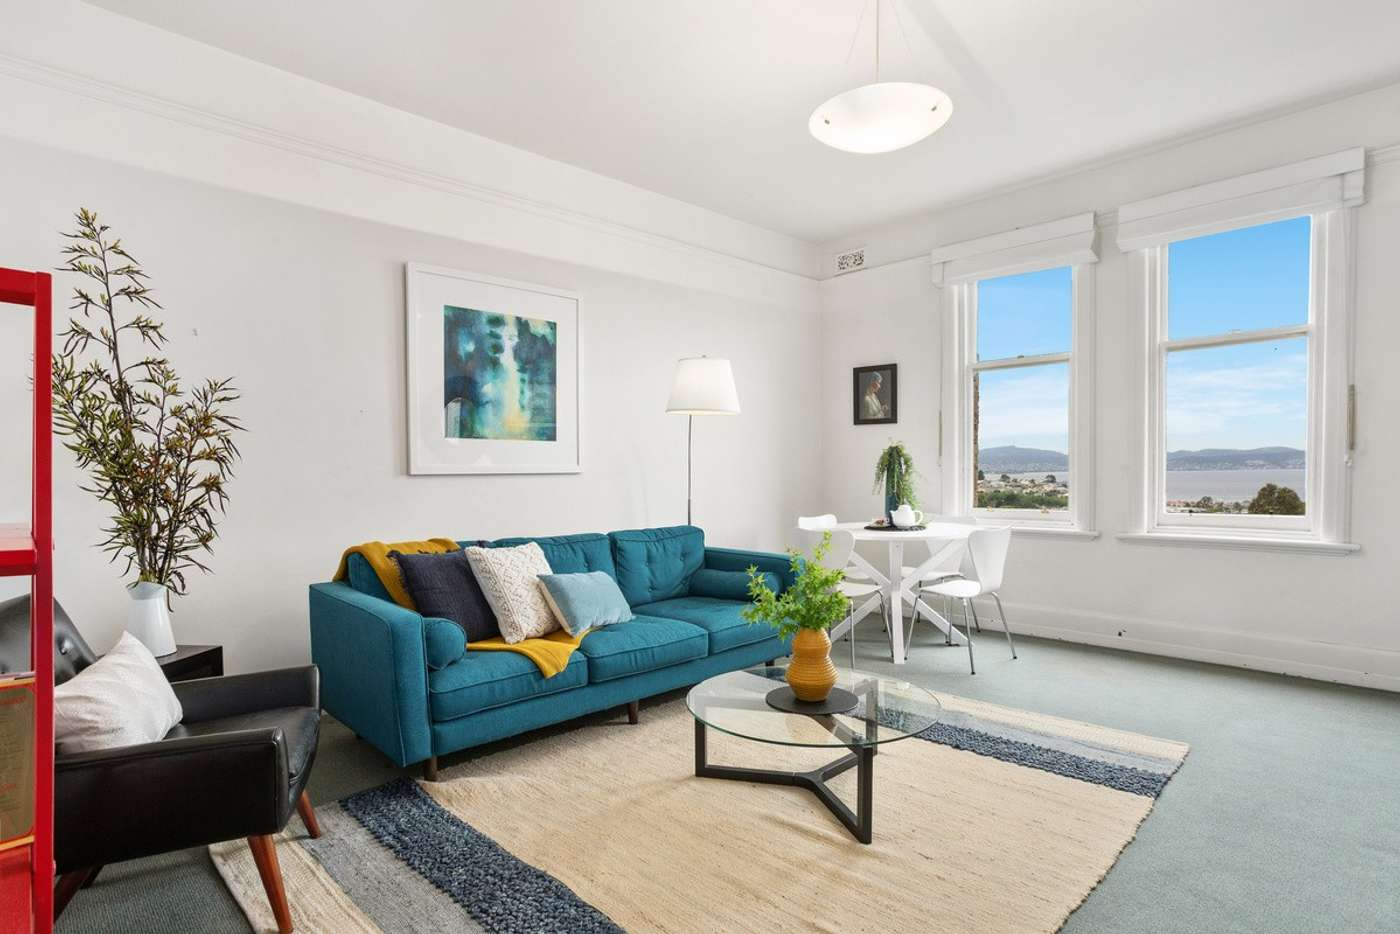 Main view of Homely apartment listing, 8/84 Upper Fitzroy Crescent, South Hobart TAS 7004